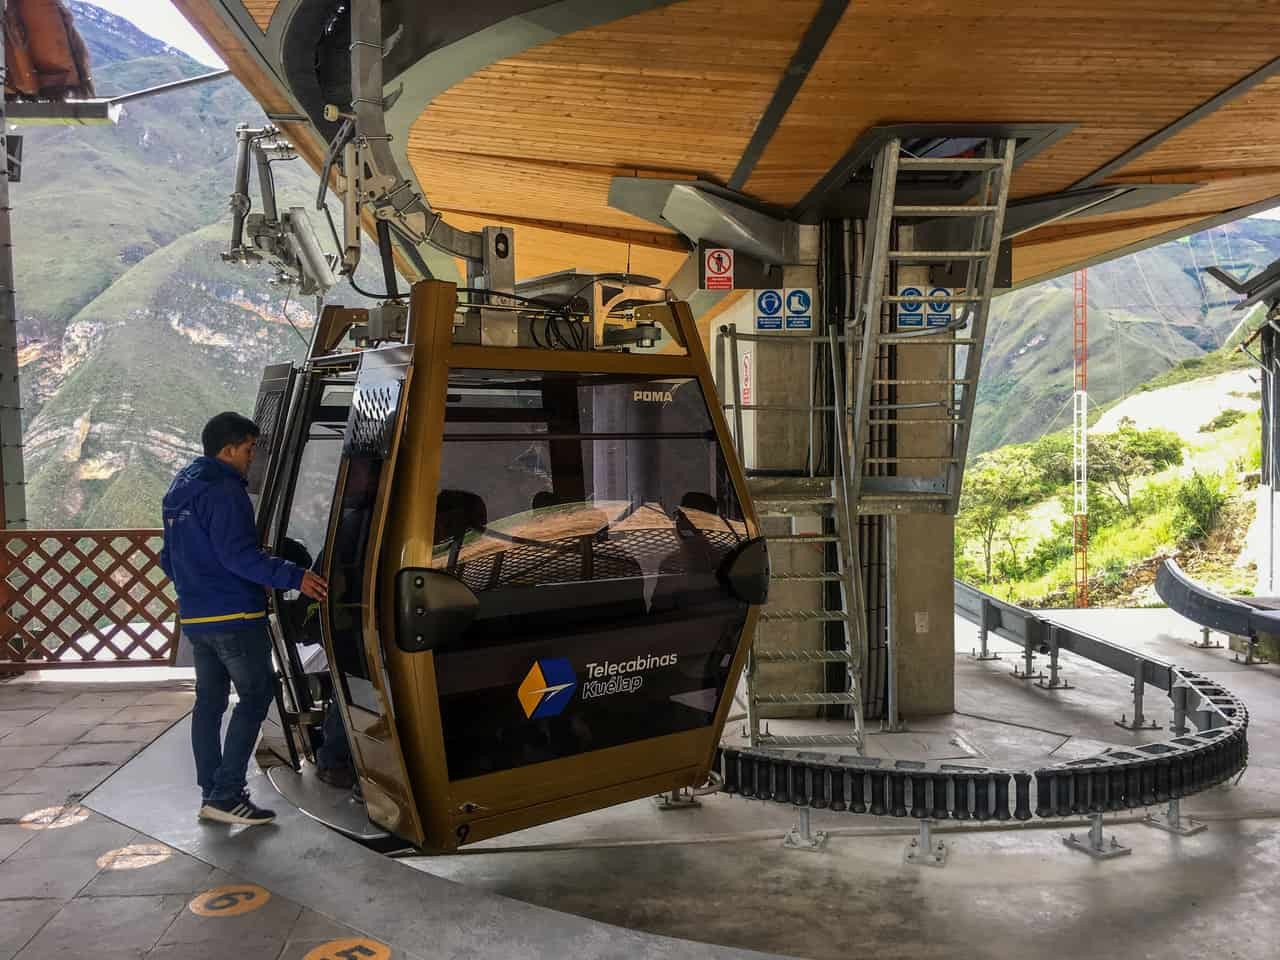 The cable cars bring visitors to the historical site complex of Kuélap, Peru.